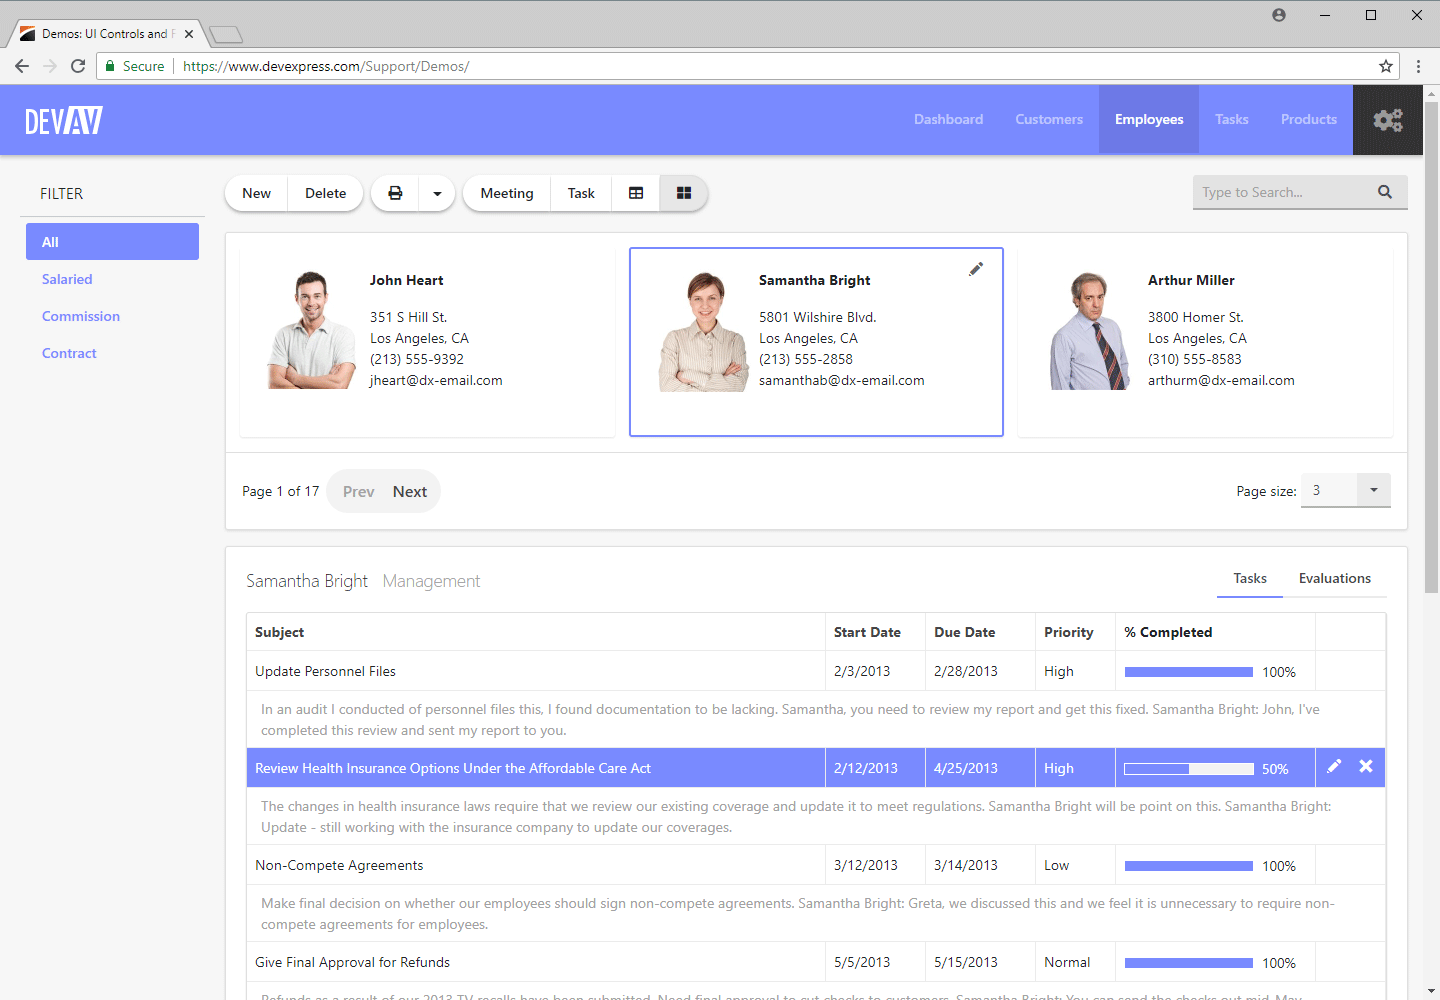 ASP.NET Bootstrap Web Forms App - CardView and GridView Controls